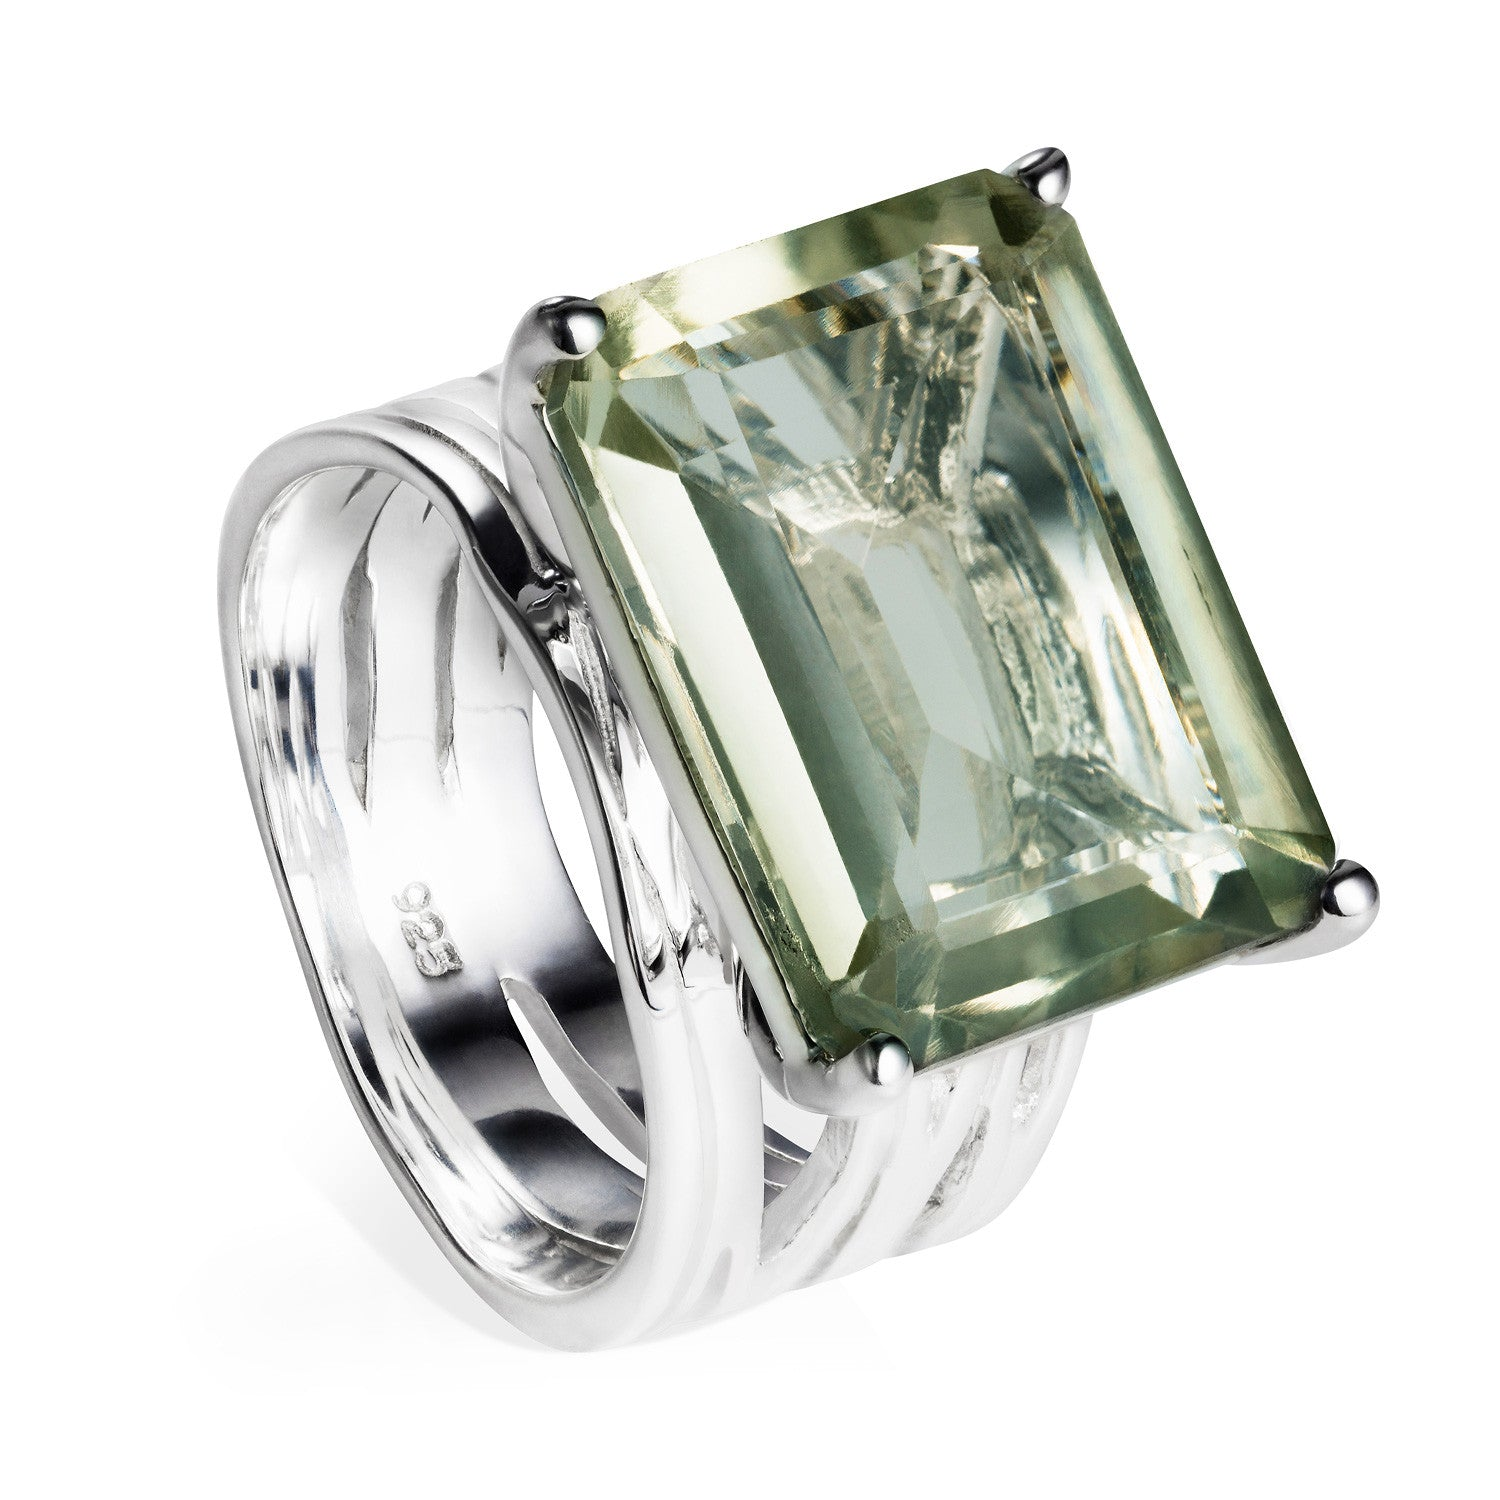 Sterling Silver Cocktail Ring Green Amethyst | Neola British Handmade Jewellery